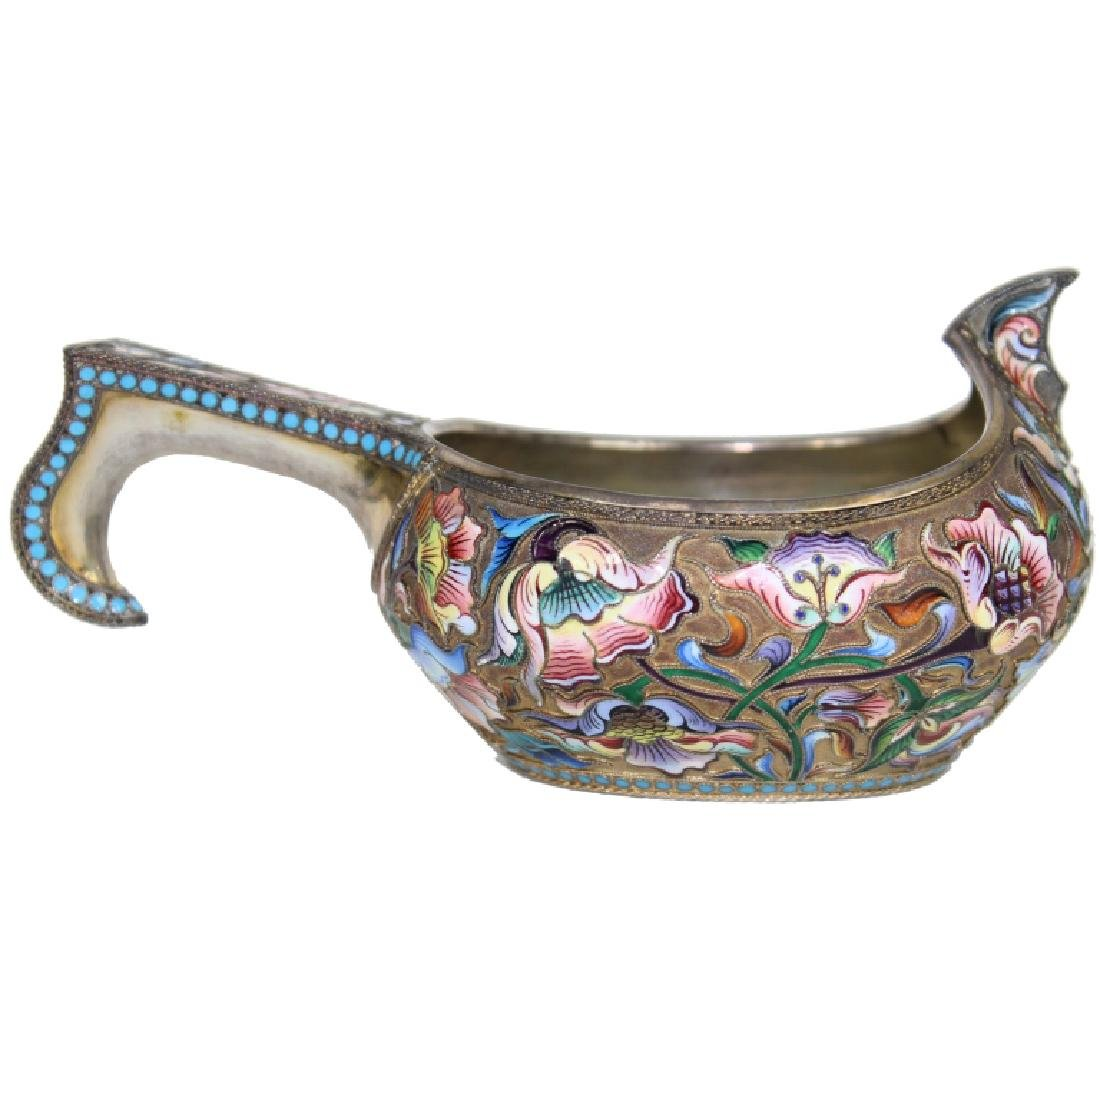 RUSSIAN SILVER GILT AND CLOISONNE ENAMEL KOVSH